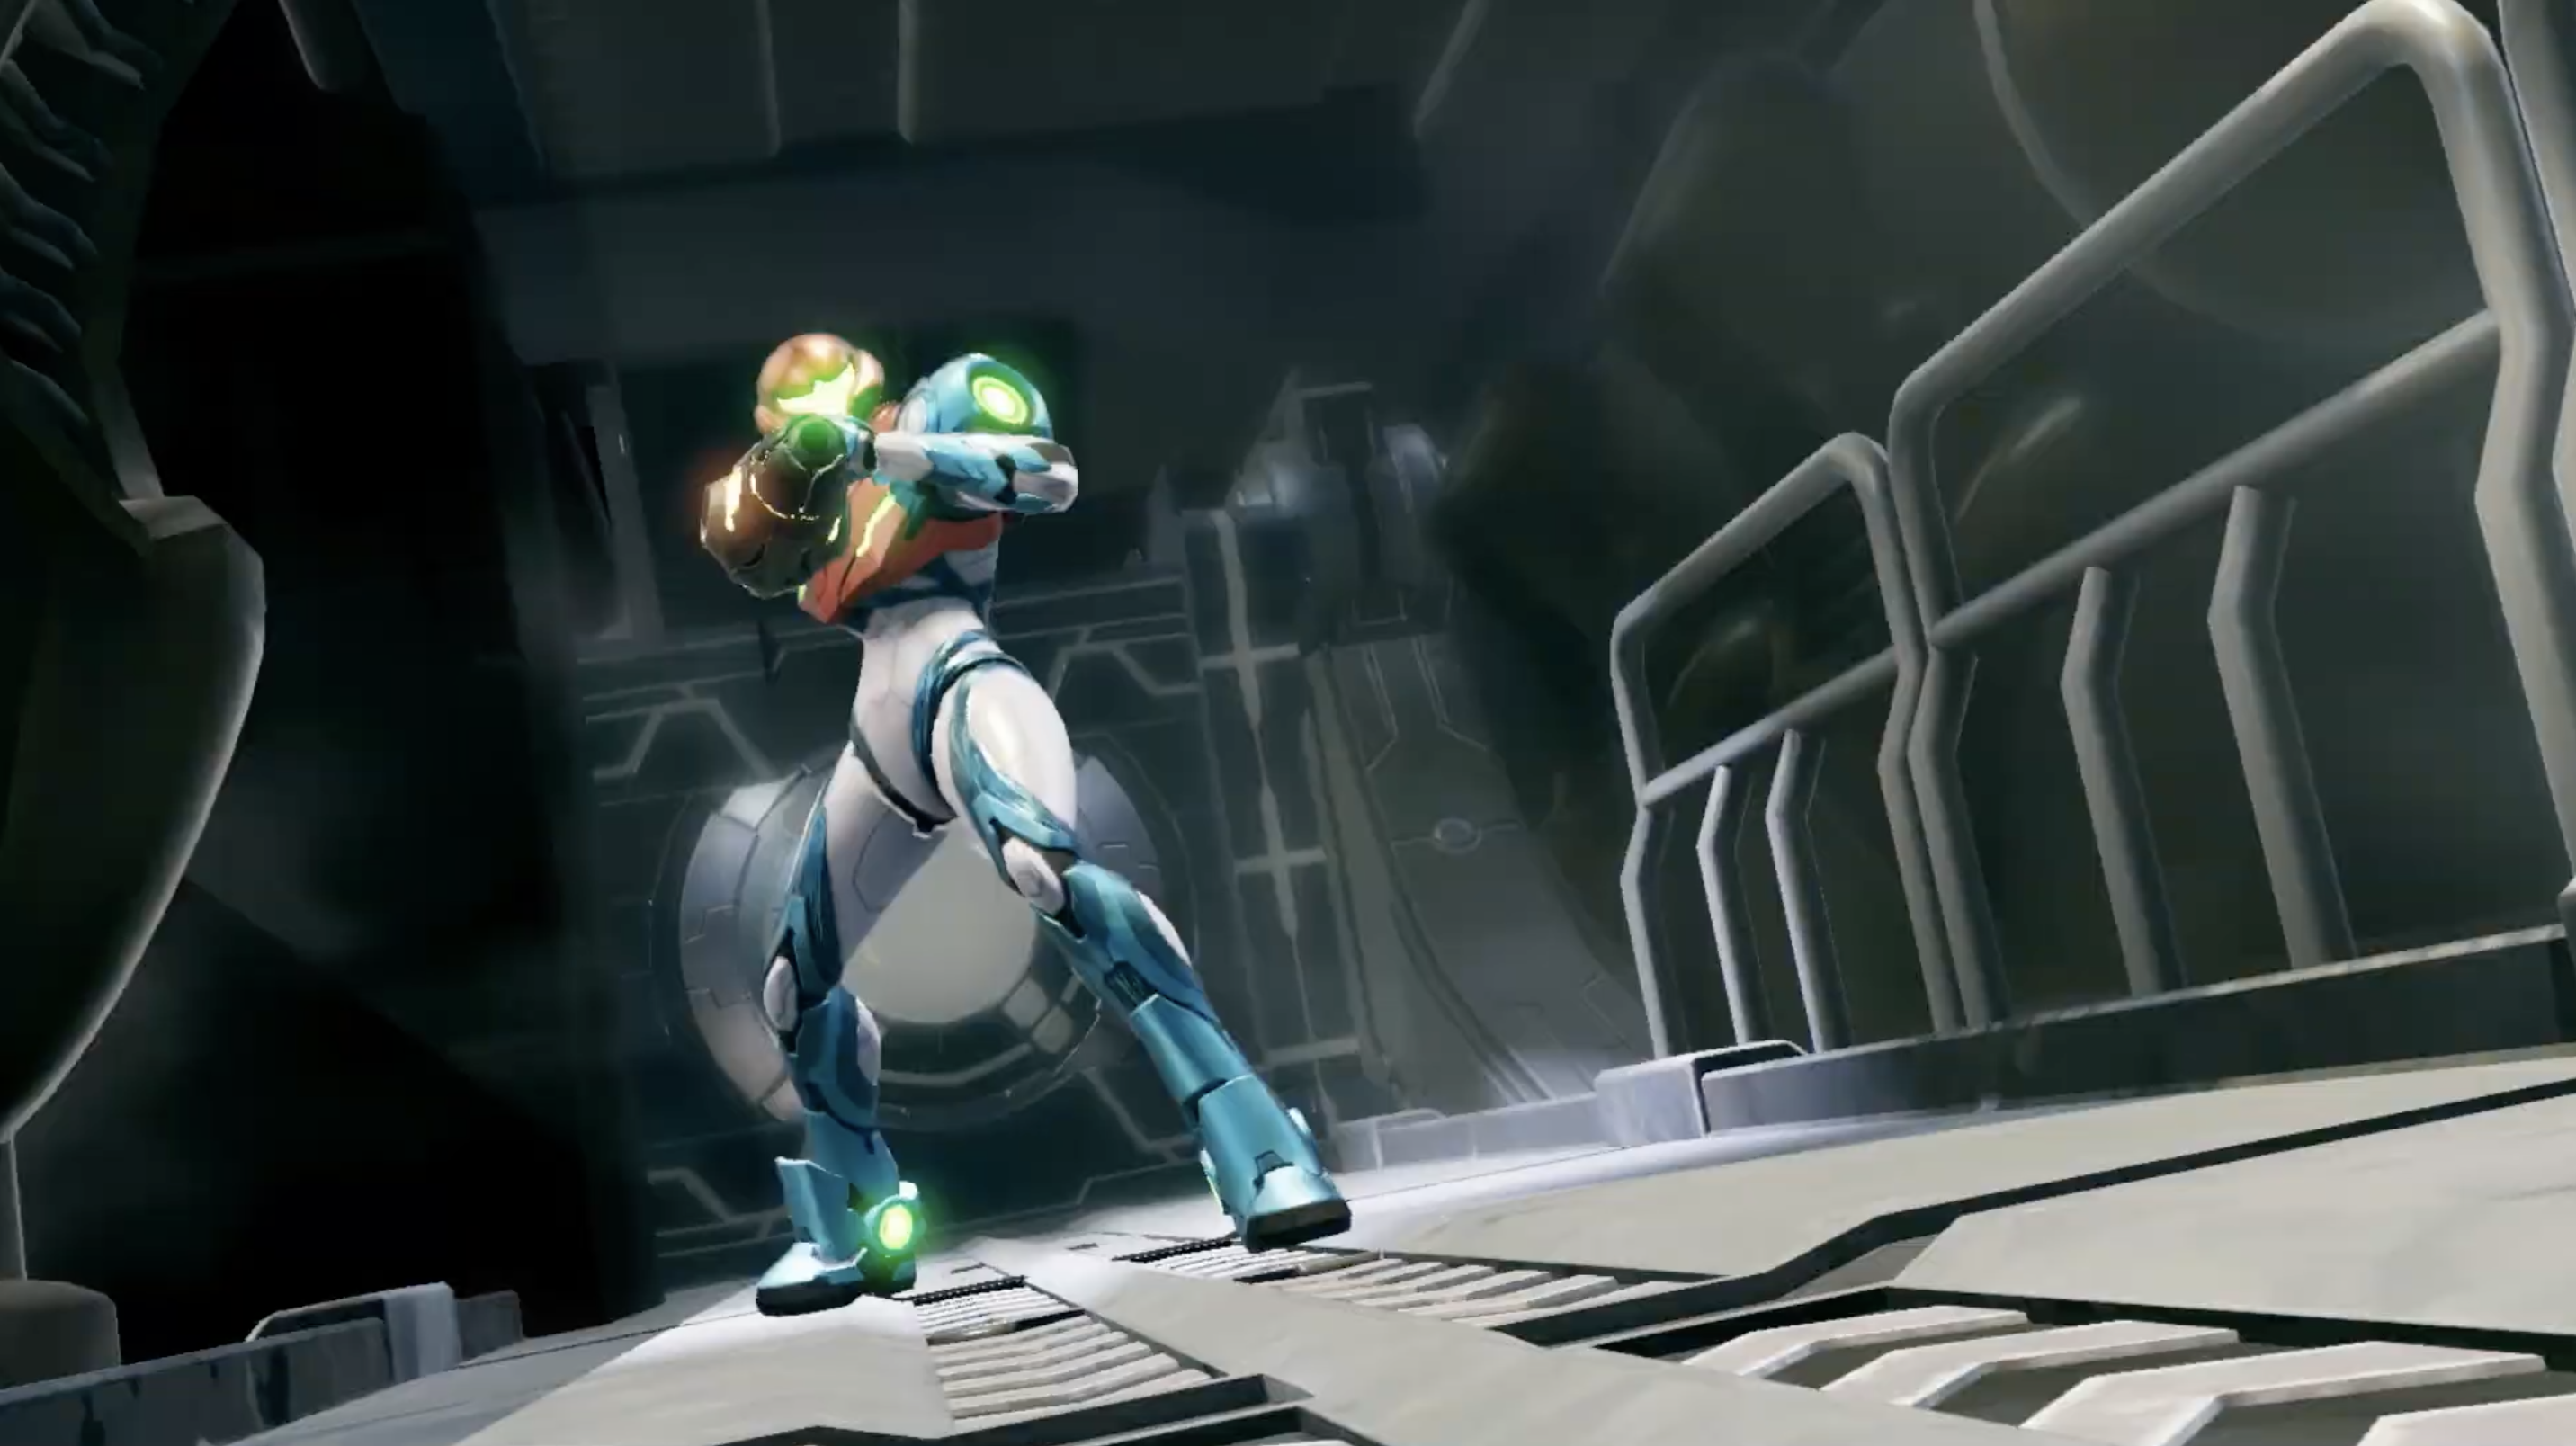 E3 2021: Metroid Dread is Not the Metroid We Expected